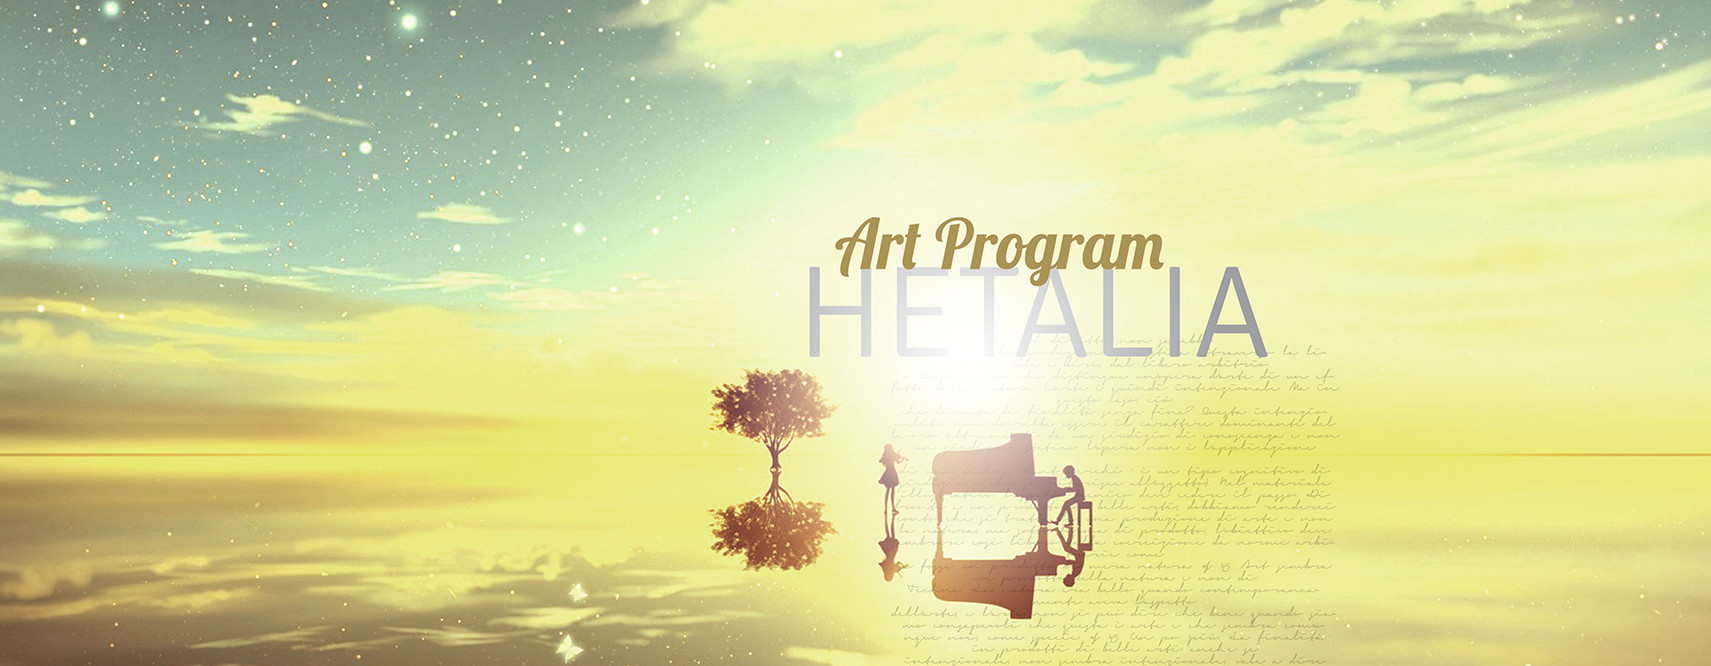 Art Program Hetalia